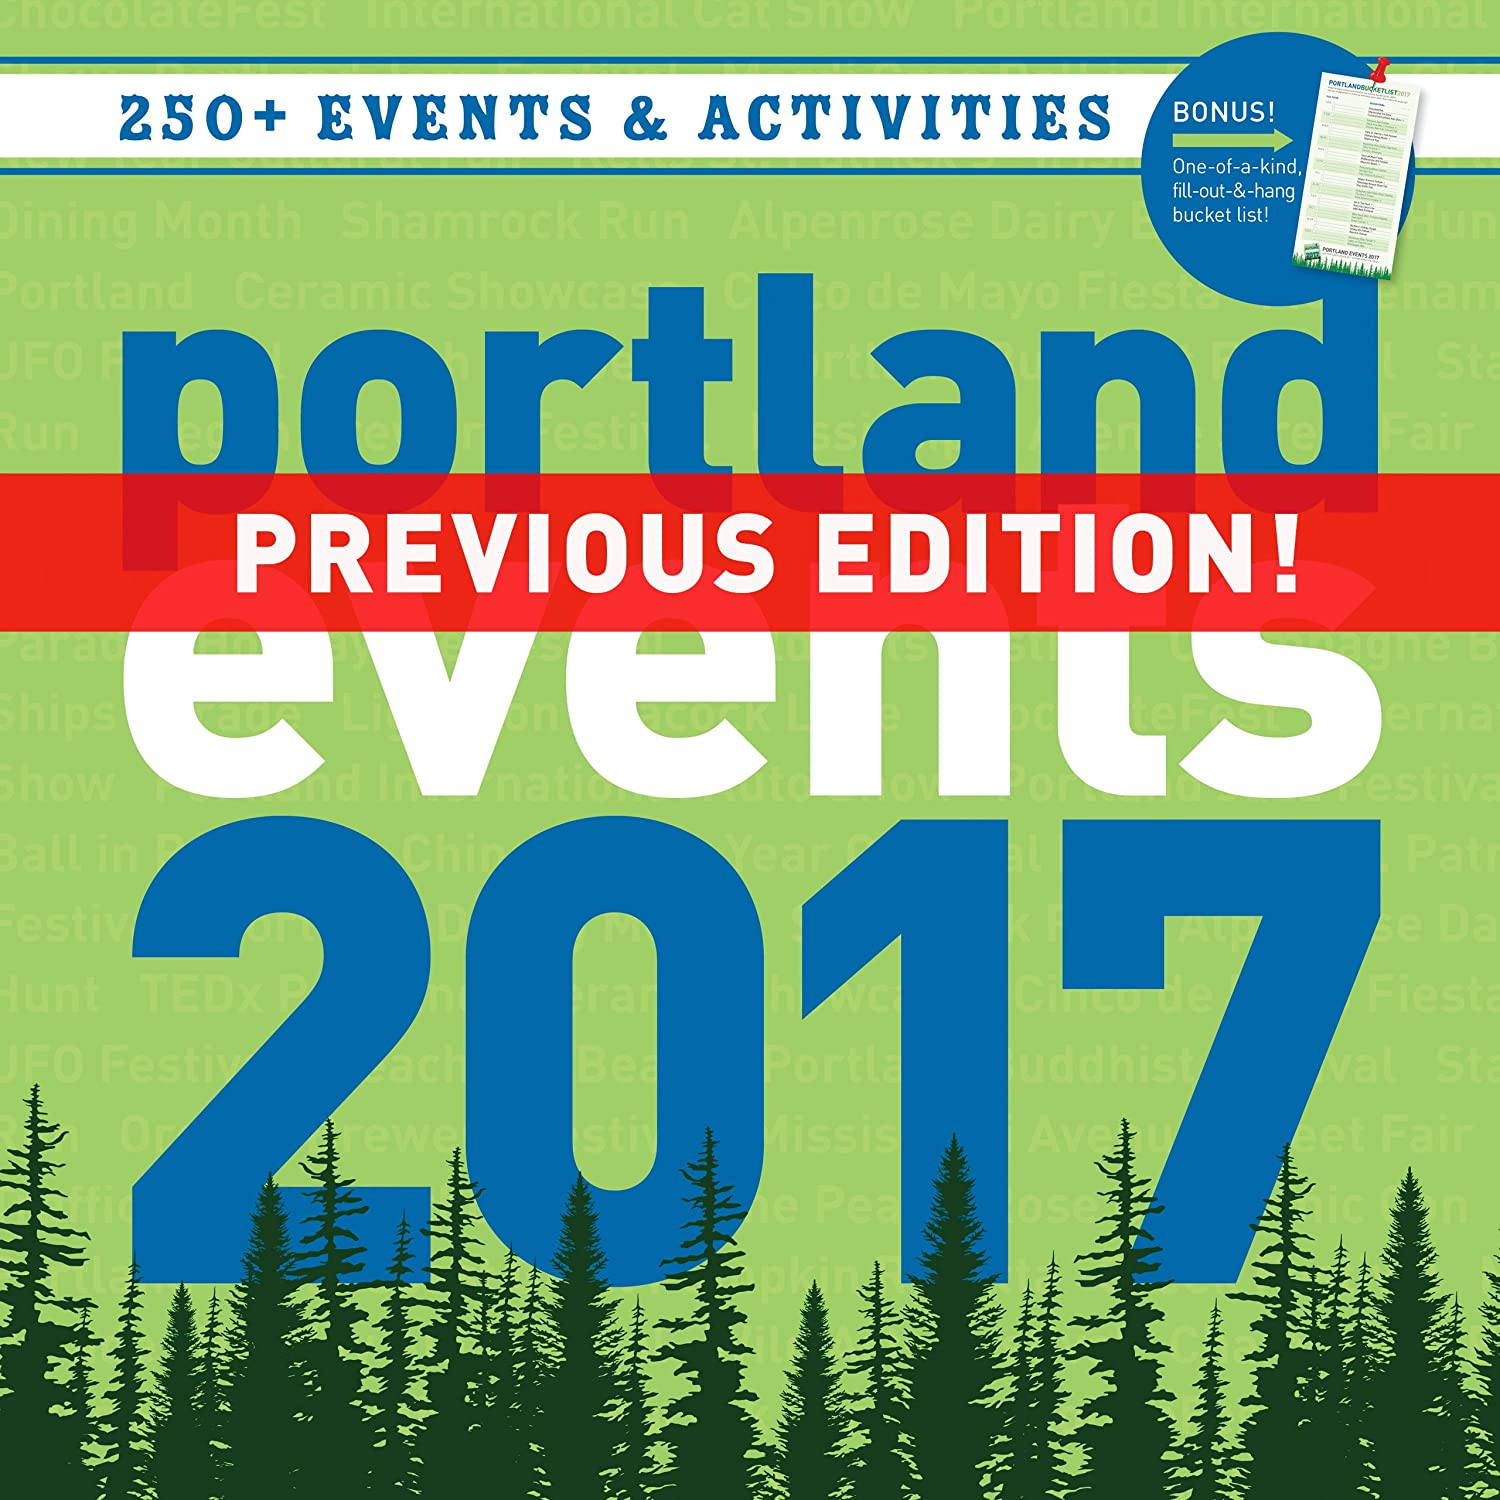 Portland Events 2017 Wall Calendar - Over 250 Portland Oregon Event Dates and Activities Already On Your Calendar!